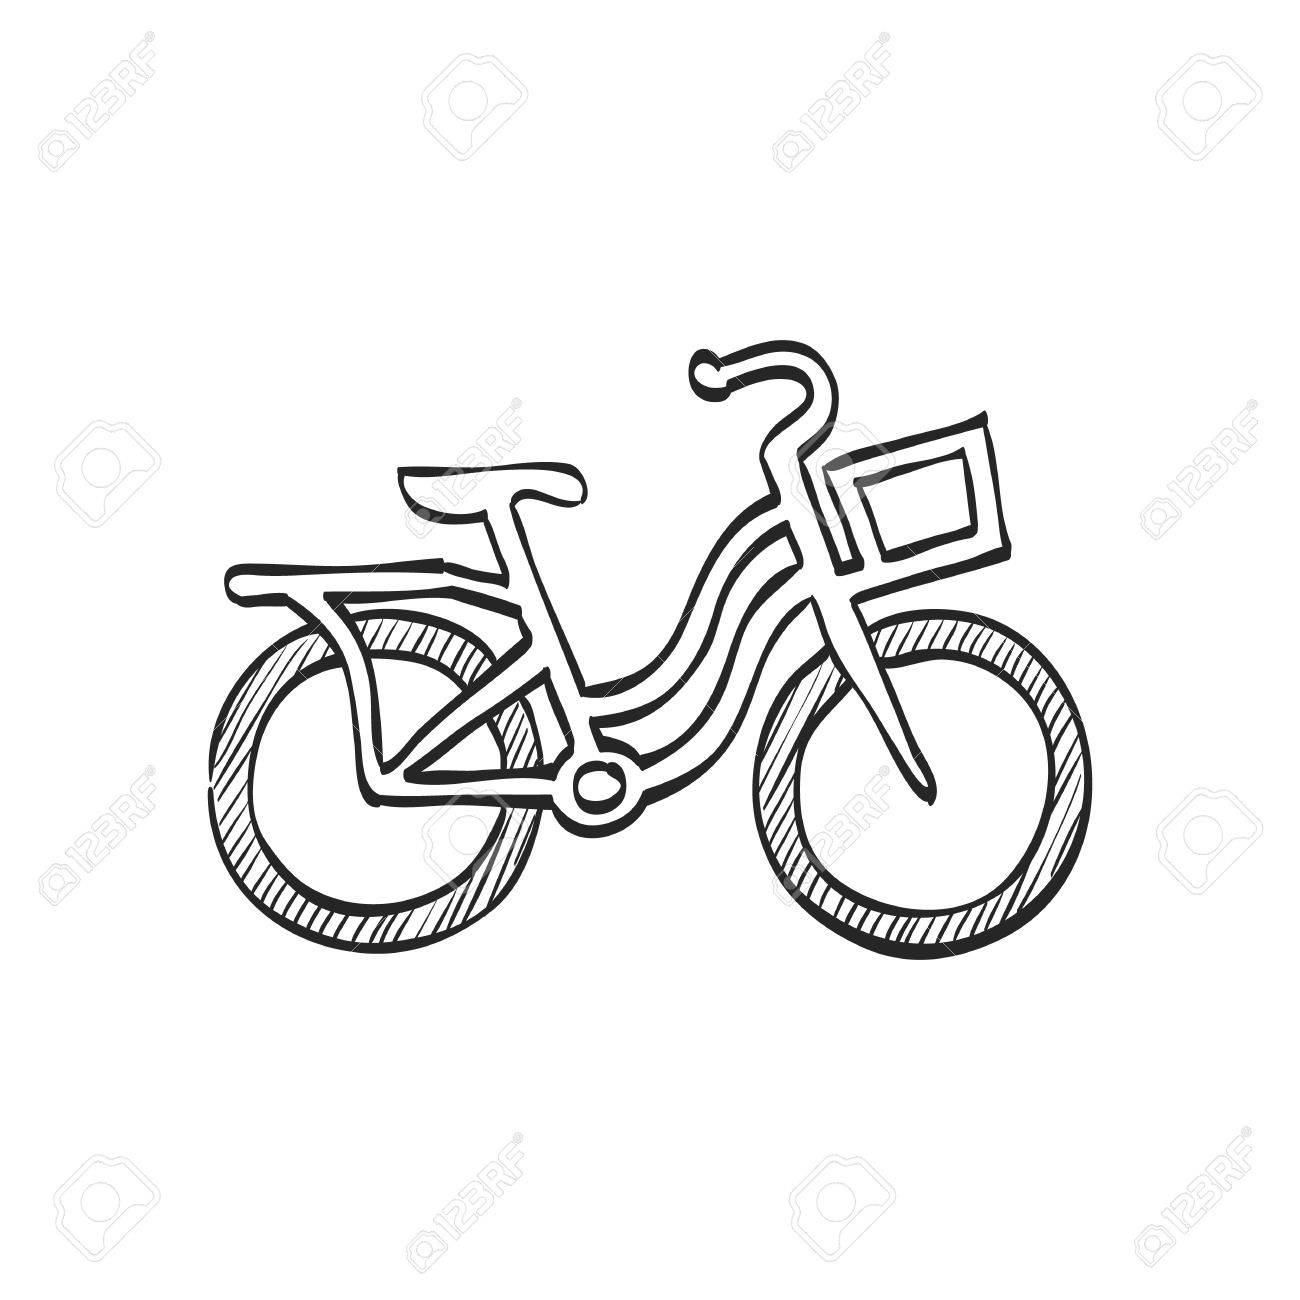 1300x1300 City Bike Icon In Doodle Sketch Lines. Transportation Sport Urban